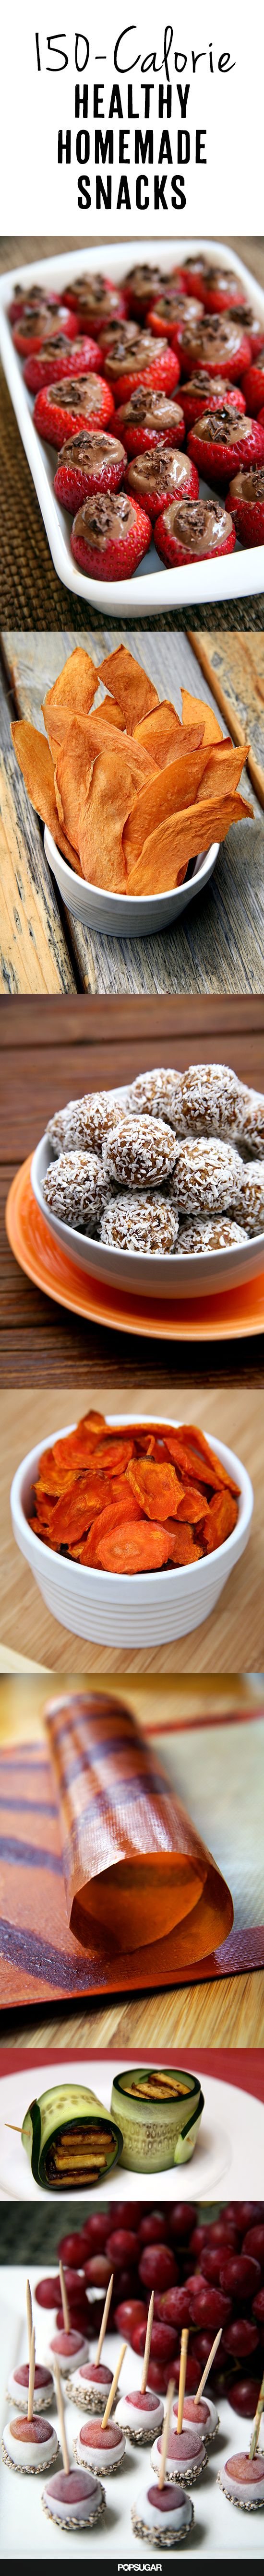 45 Days of 150-Calorie Homemade Snacks-Visit our website at http://www.fitnessnowbocaraton.com for a FREE TRIAL PASS